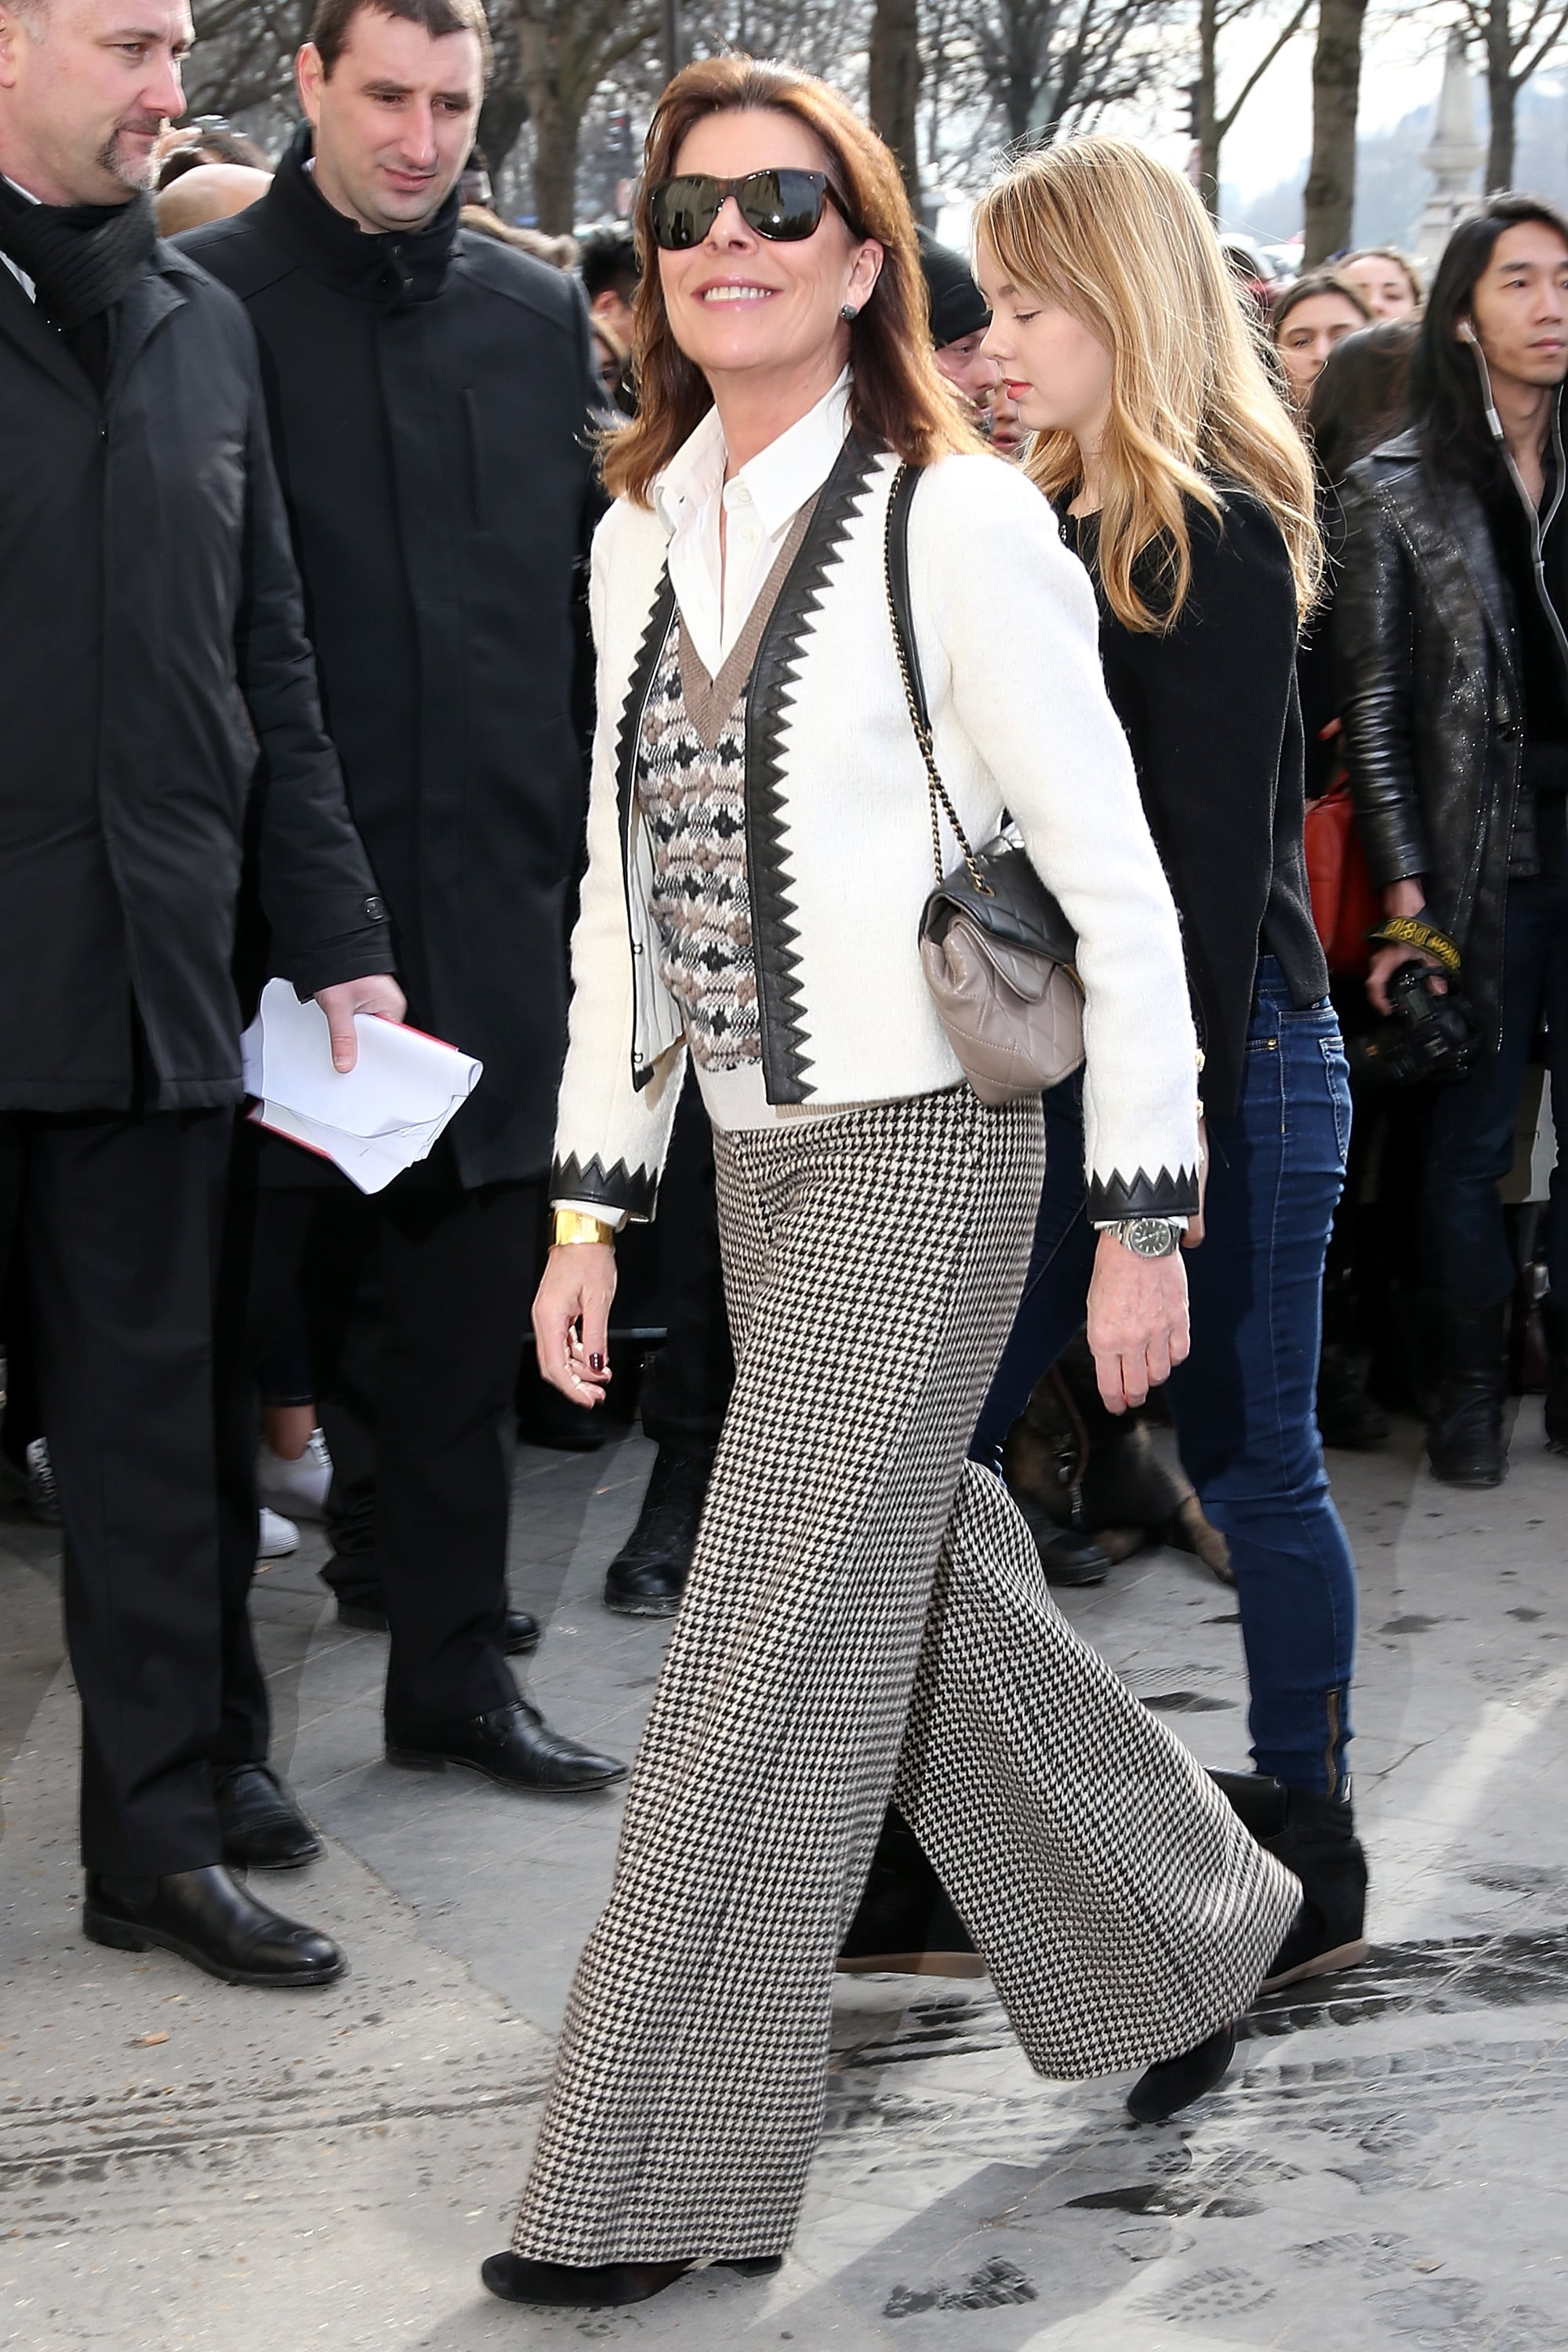 Princess Caroline Of Monaco At The Paris Fashion Week Chanel Show 9 Designers Every Royal Just Loves To Wear Popsugar Fashion Photo 17